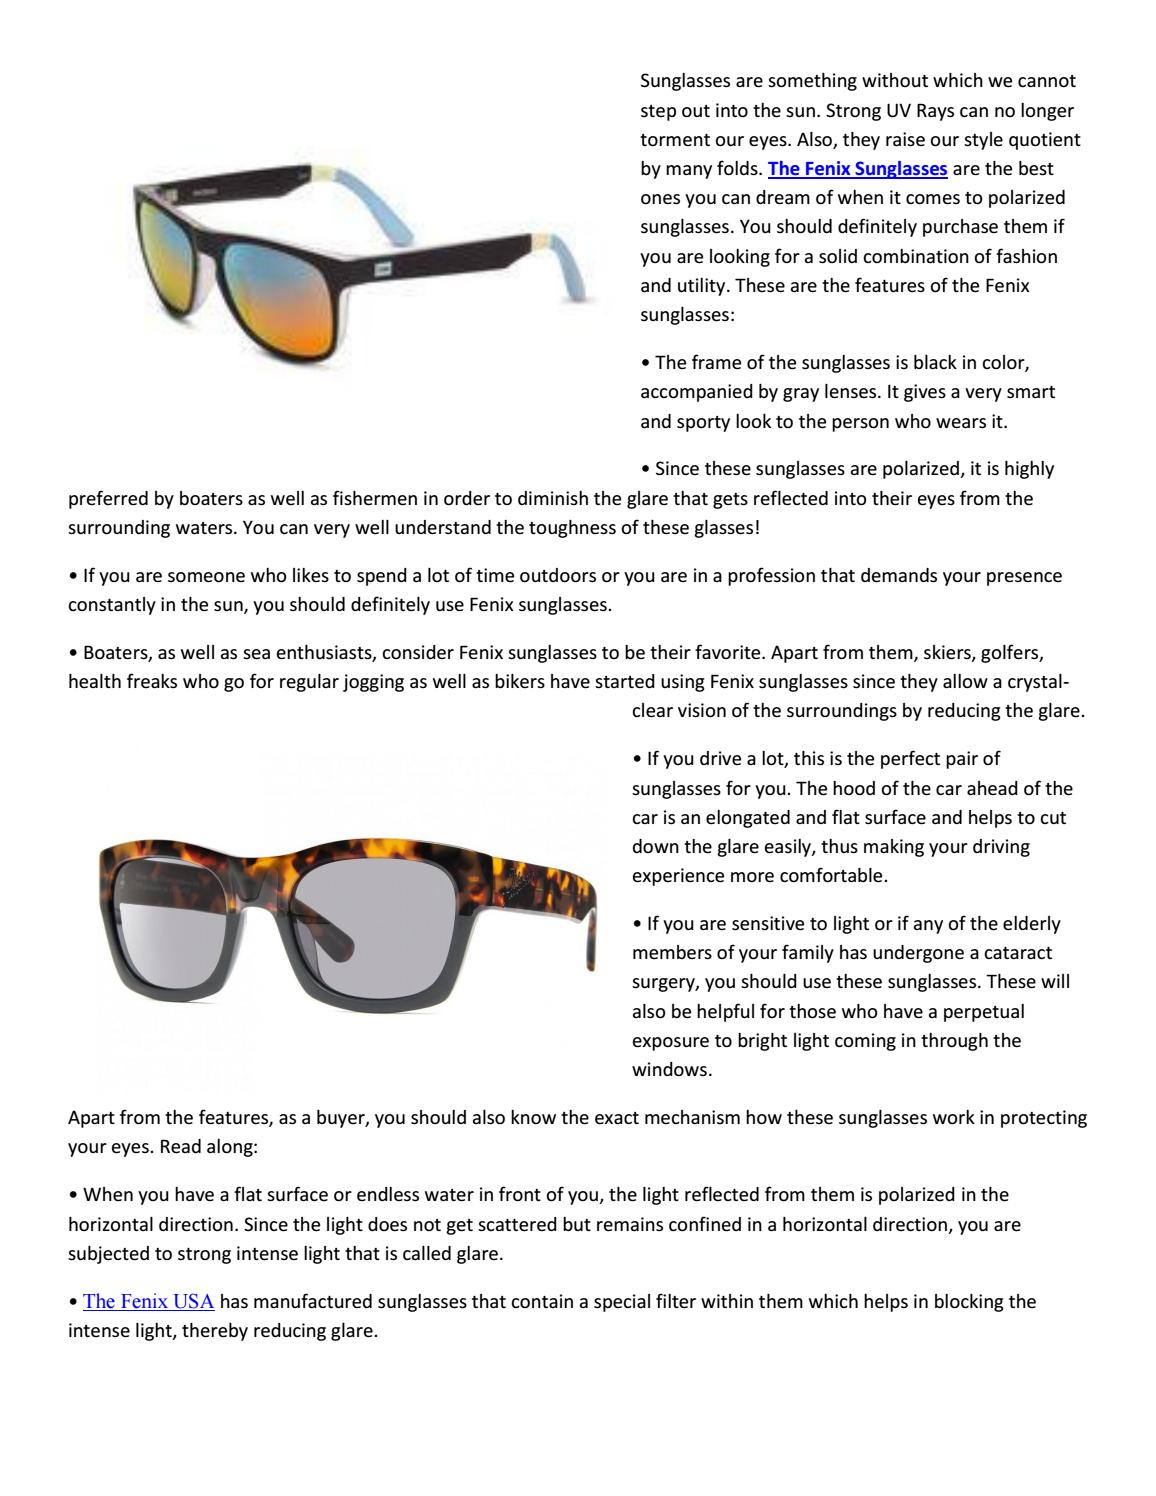 efd96748beb The Fenix Sunglasses  A must-have by dwaynsmithjohnson - issuu